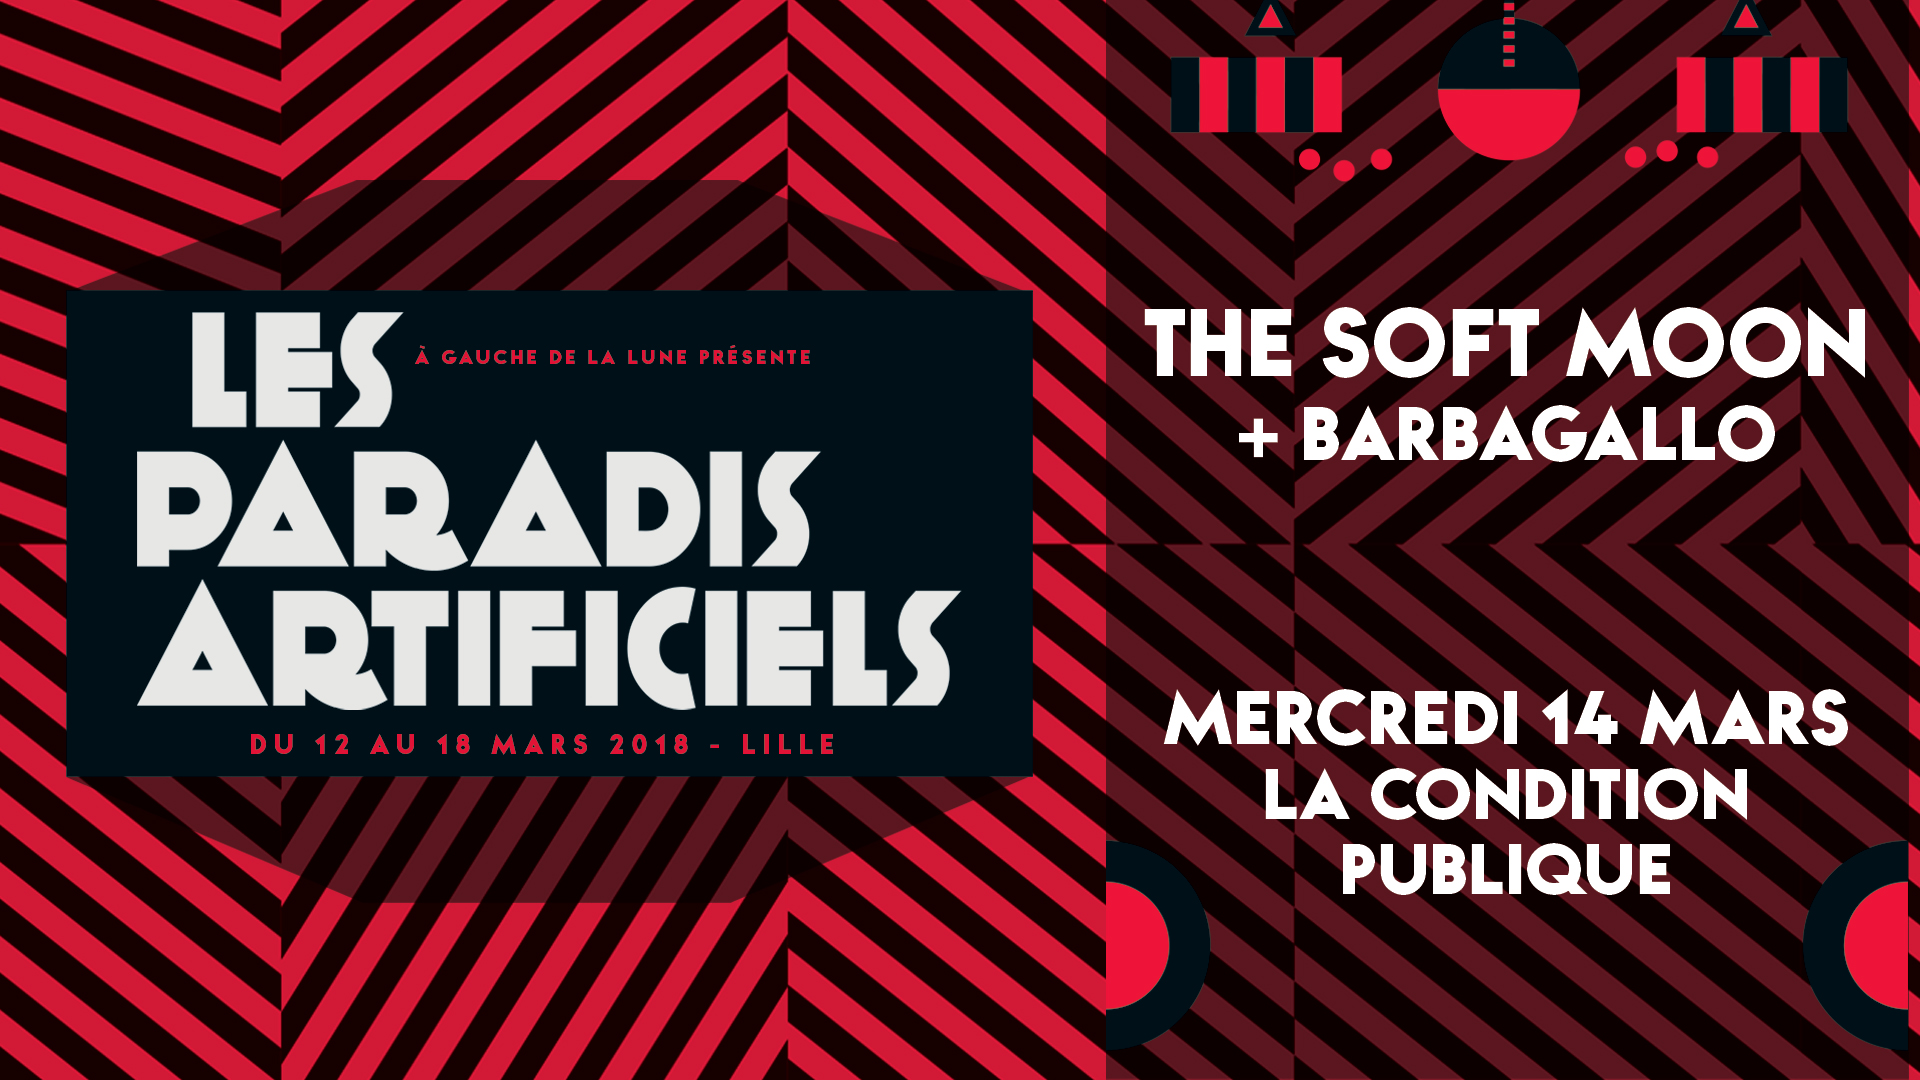 Paradis Artificiels 2018 : The Soft Moon + Barbagallo